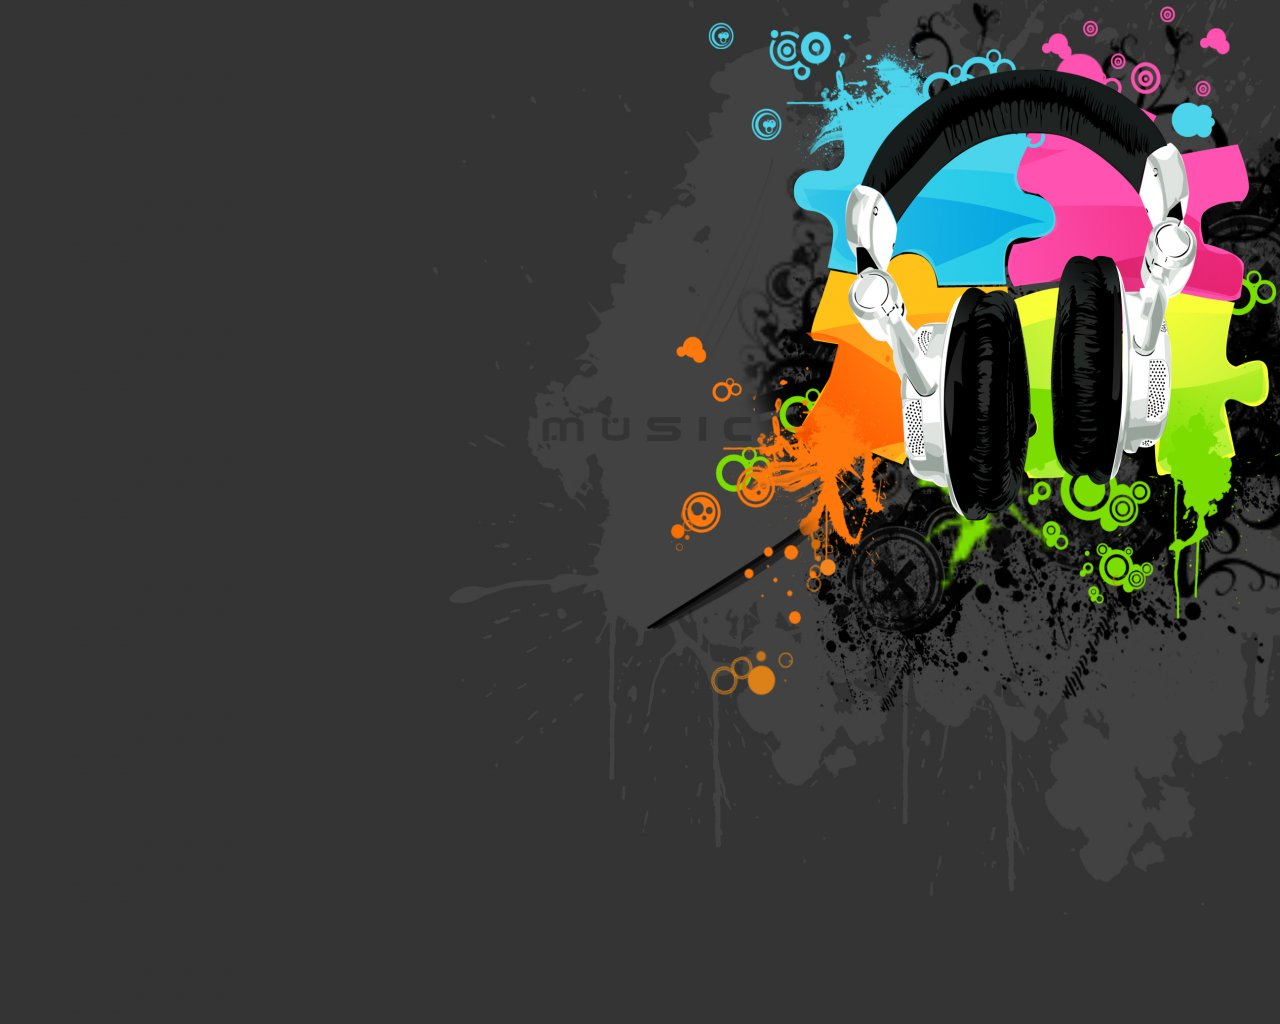 http://2.bp.blogspot.com/-YFX6GR5BYfw/TwV9Kbgp74I/AAAAAAAAAC8/we1g1n2A5wM/s1600/Music%20Abstract%20Wallpapers%20HD%204.jpg